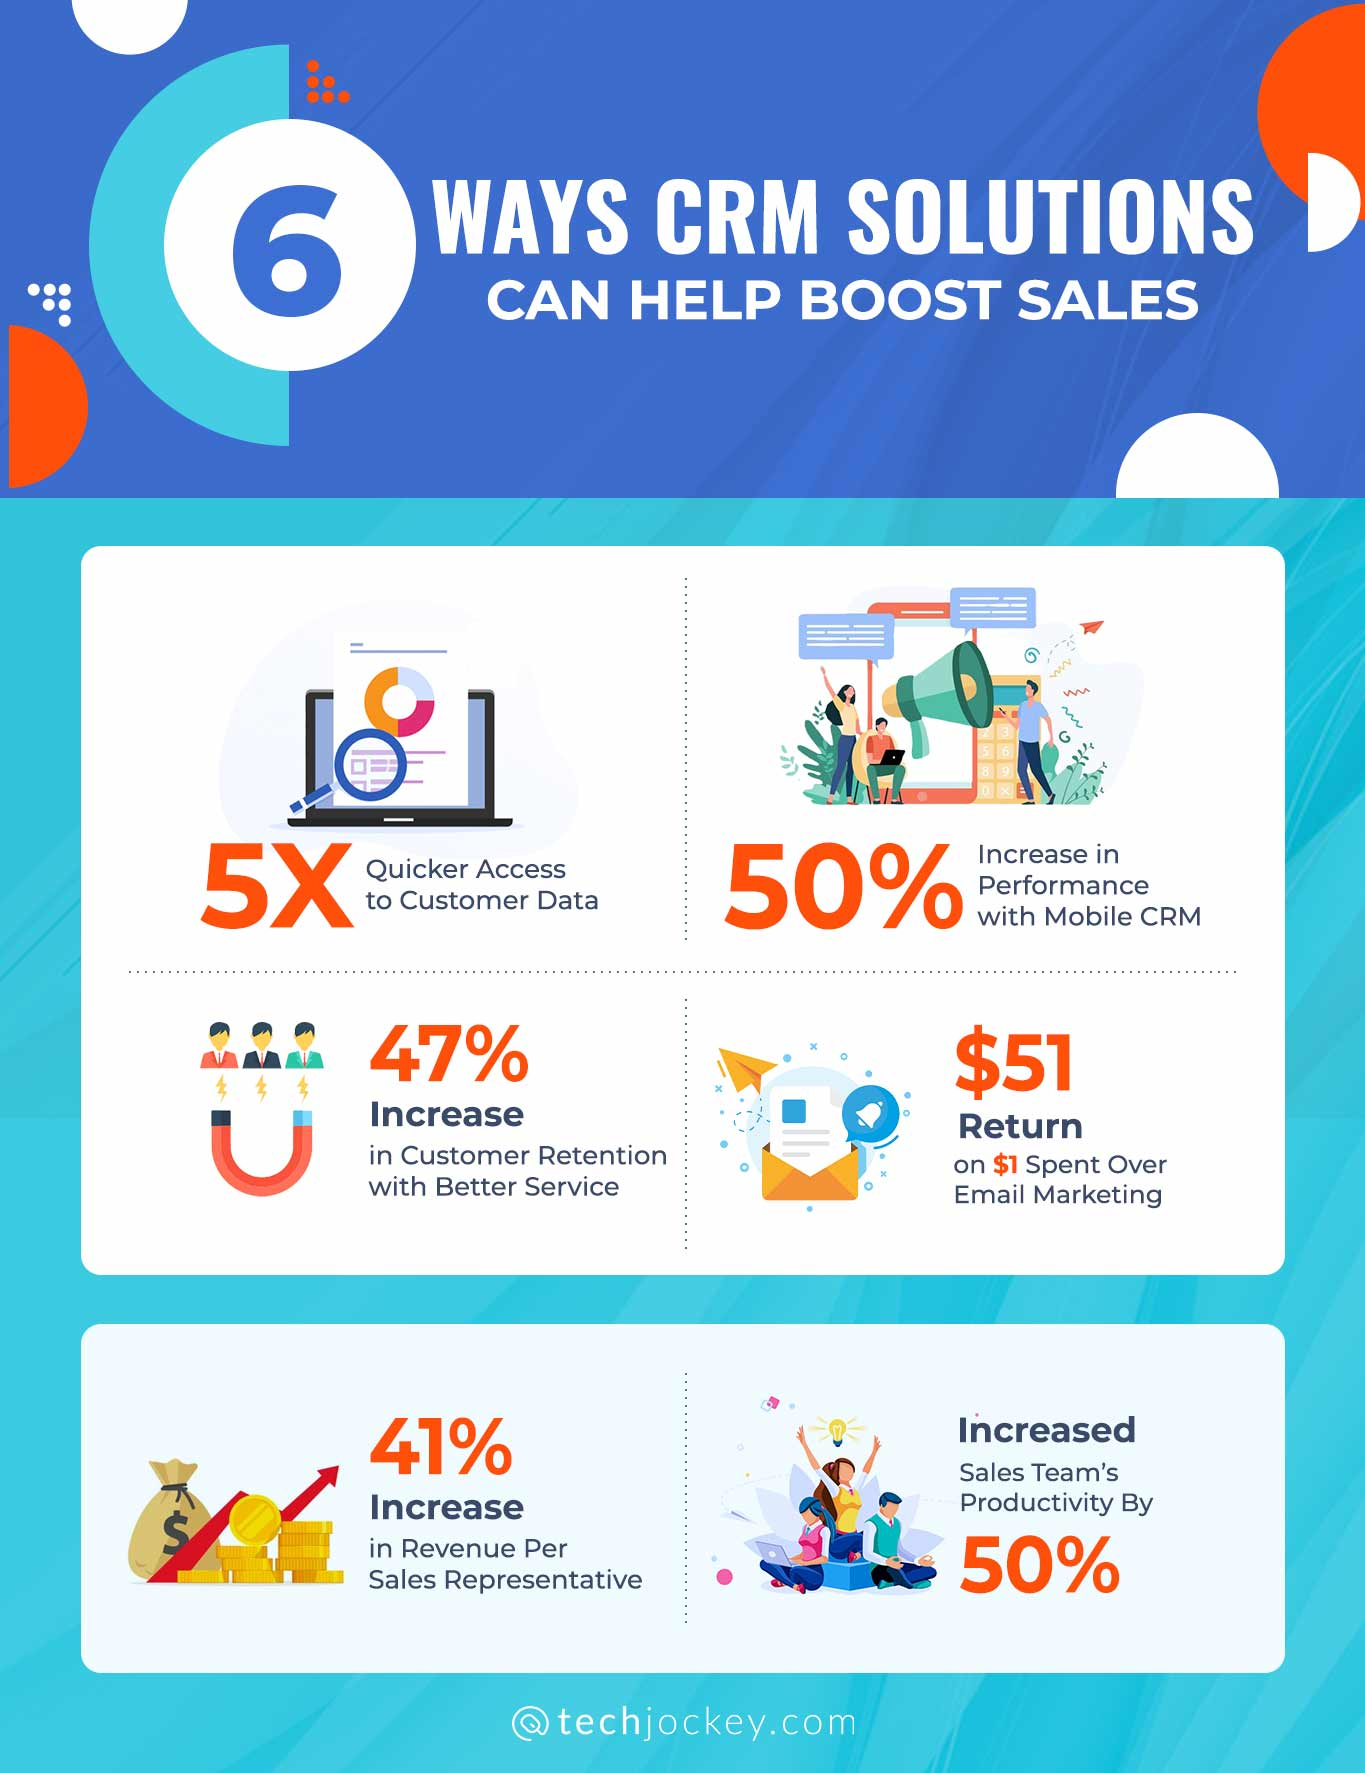 CRM Solutions Can Help Boost Sales